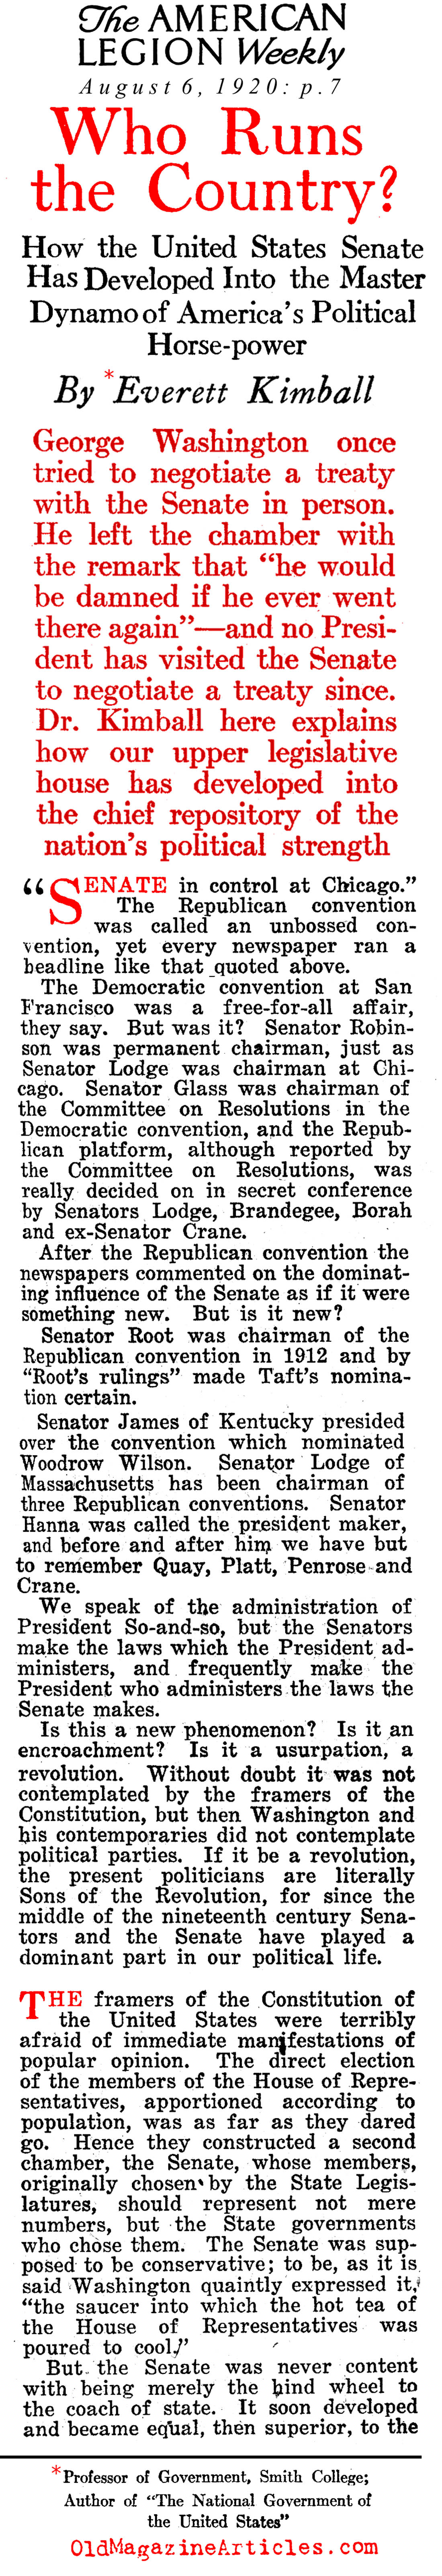 The Popularly-Elected Senate (American Legion Weekly, 1920)